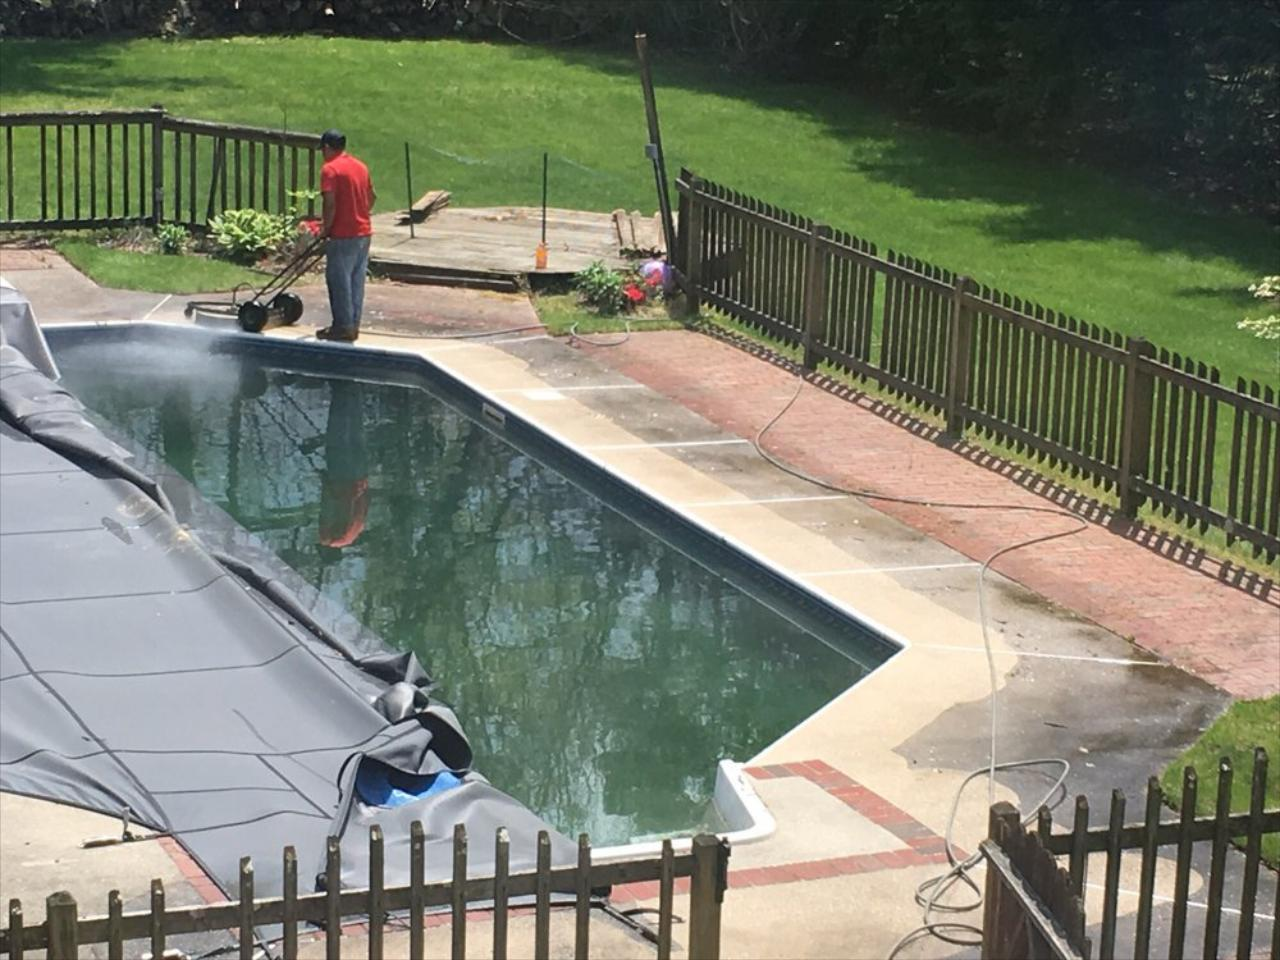 Are your exterior surfaces looking a little dull and dingy? Need to spruce up your outdoor living areas?